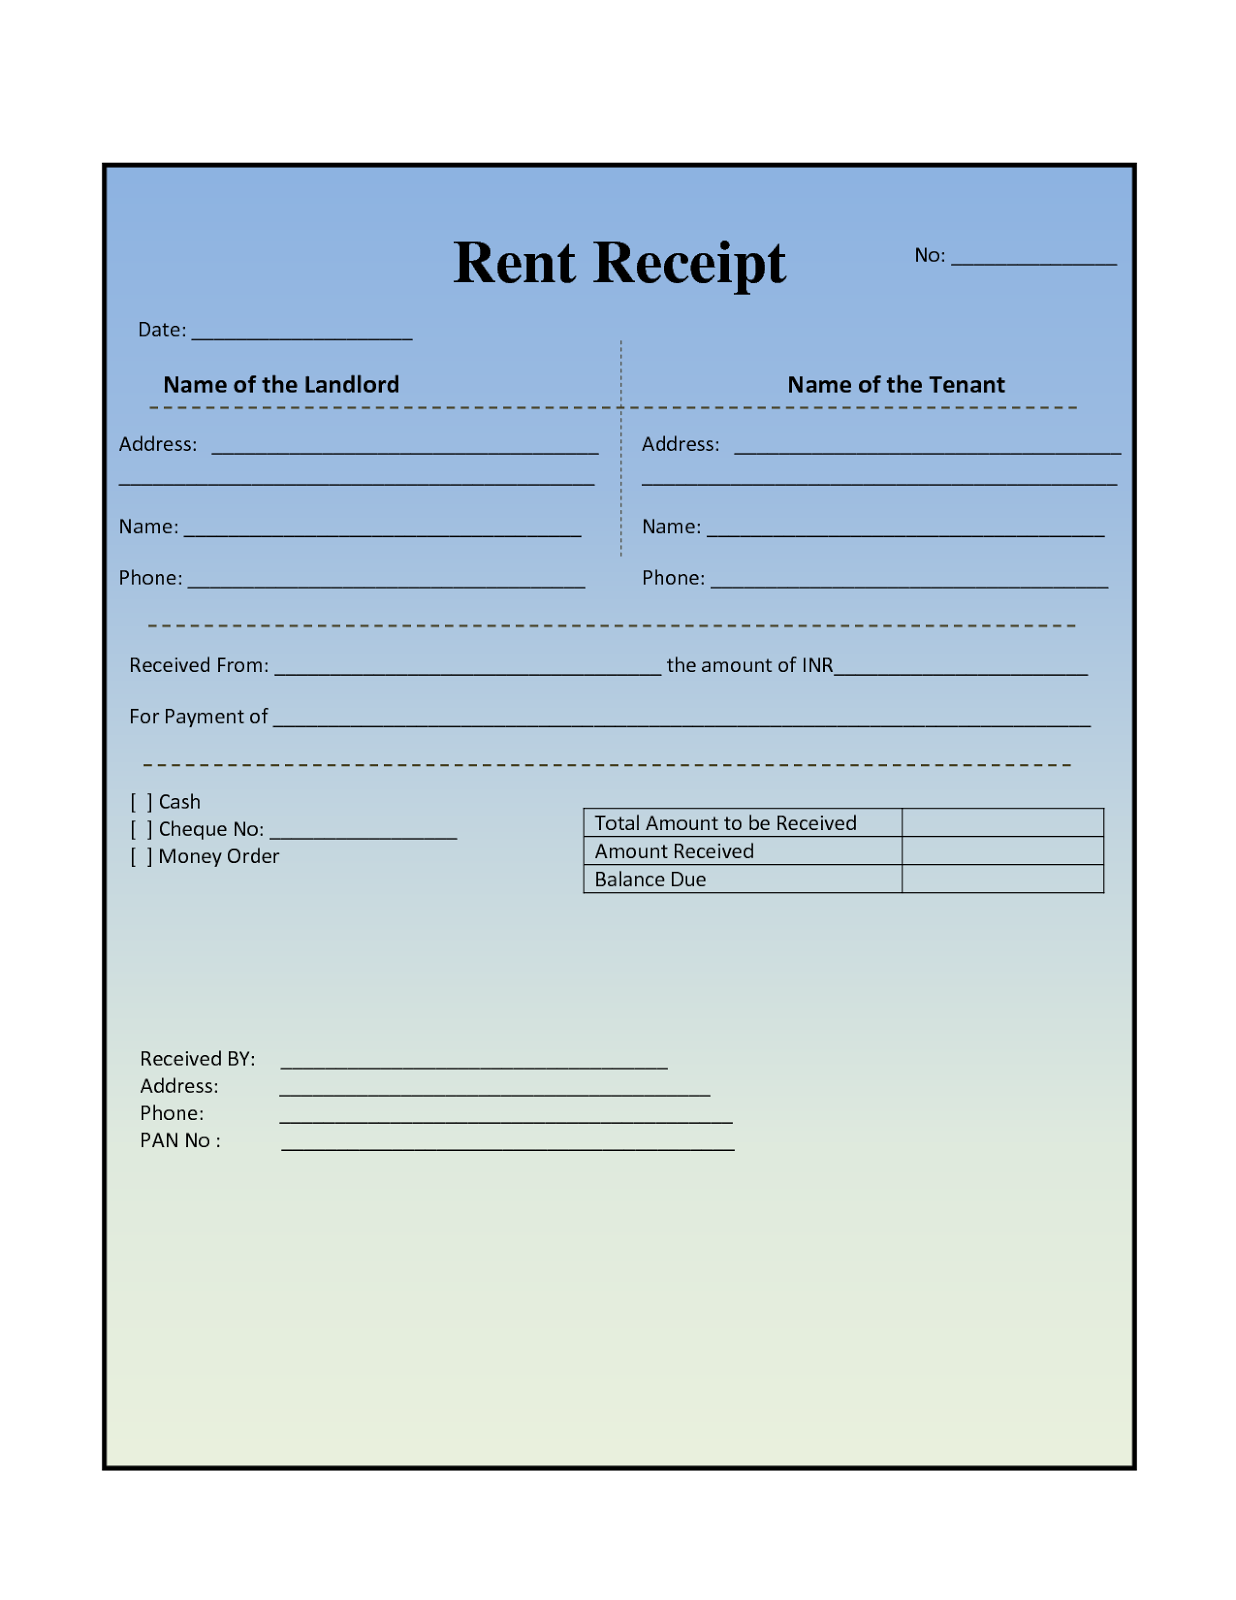 rent receipt format india – Format for House Rent Receipt